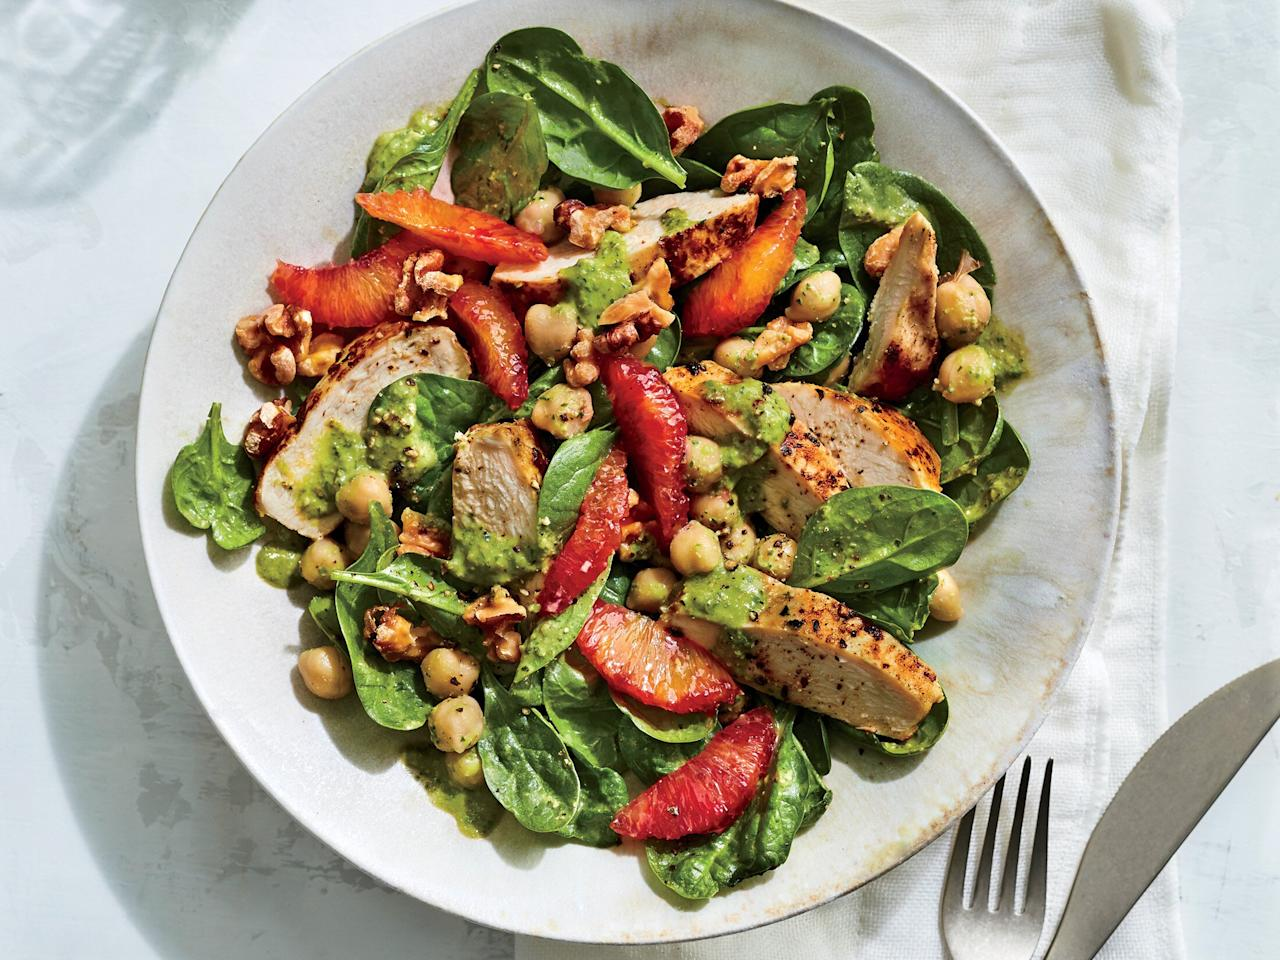 """<p>Starting with pre-cooked leftover chicken, this recipe comes together in only 10 minutes. Thanks to a variety of ingredients, this salad is a nutritional powerhouse, brimming with antioxidants from the oranges, heart-healthy fats from the walnuts and avocado, and folate and vitamin A from the spinach. We skip the croutons and add toasted walnuts for some heart-healthy crunch.</p> <p><a href=""""https://www.myrecipes.com/recipe/chickpea-spinach-salad"""">Chickpea Spinach Salad Recipe</a></p>"""